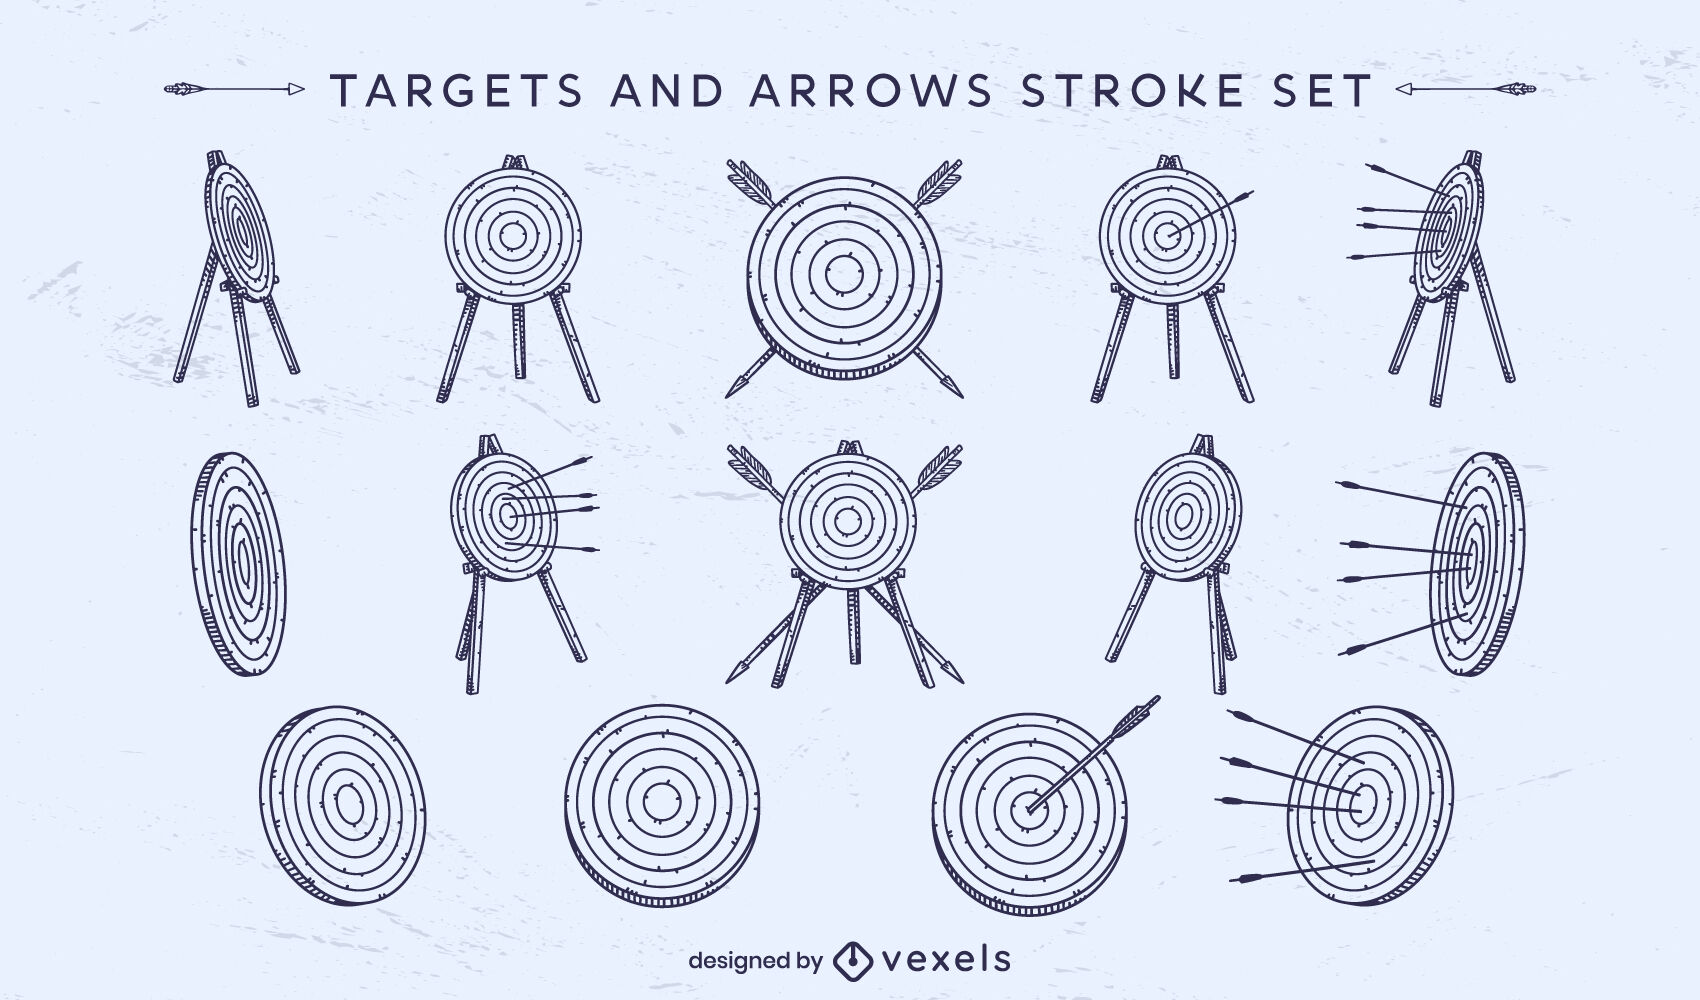 Targets and arrows stroke set